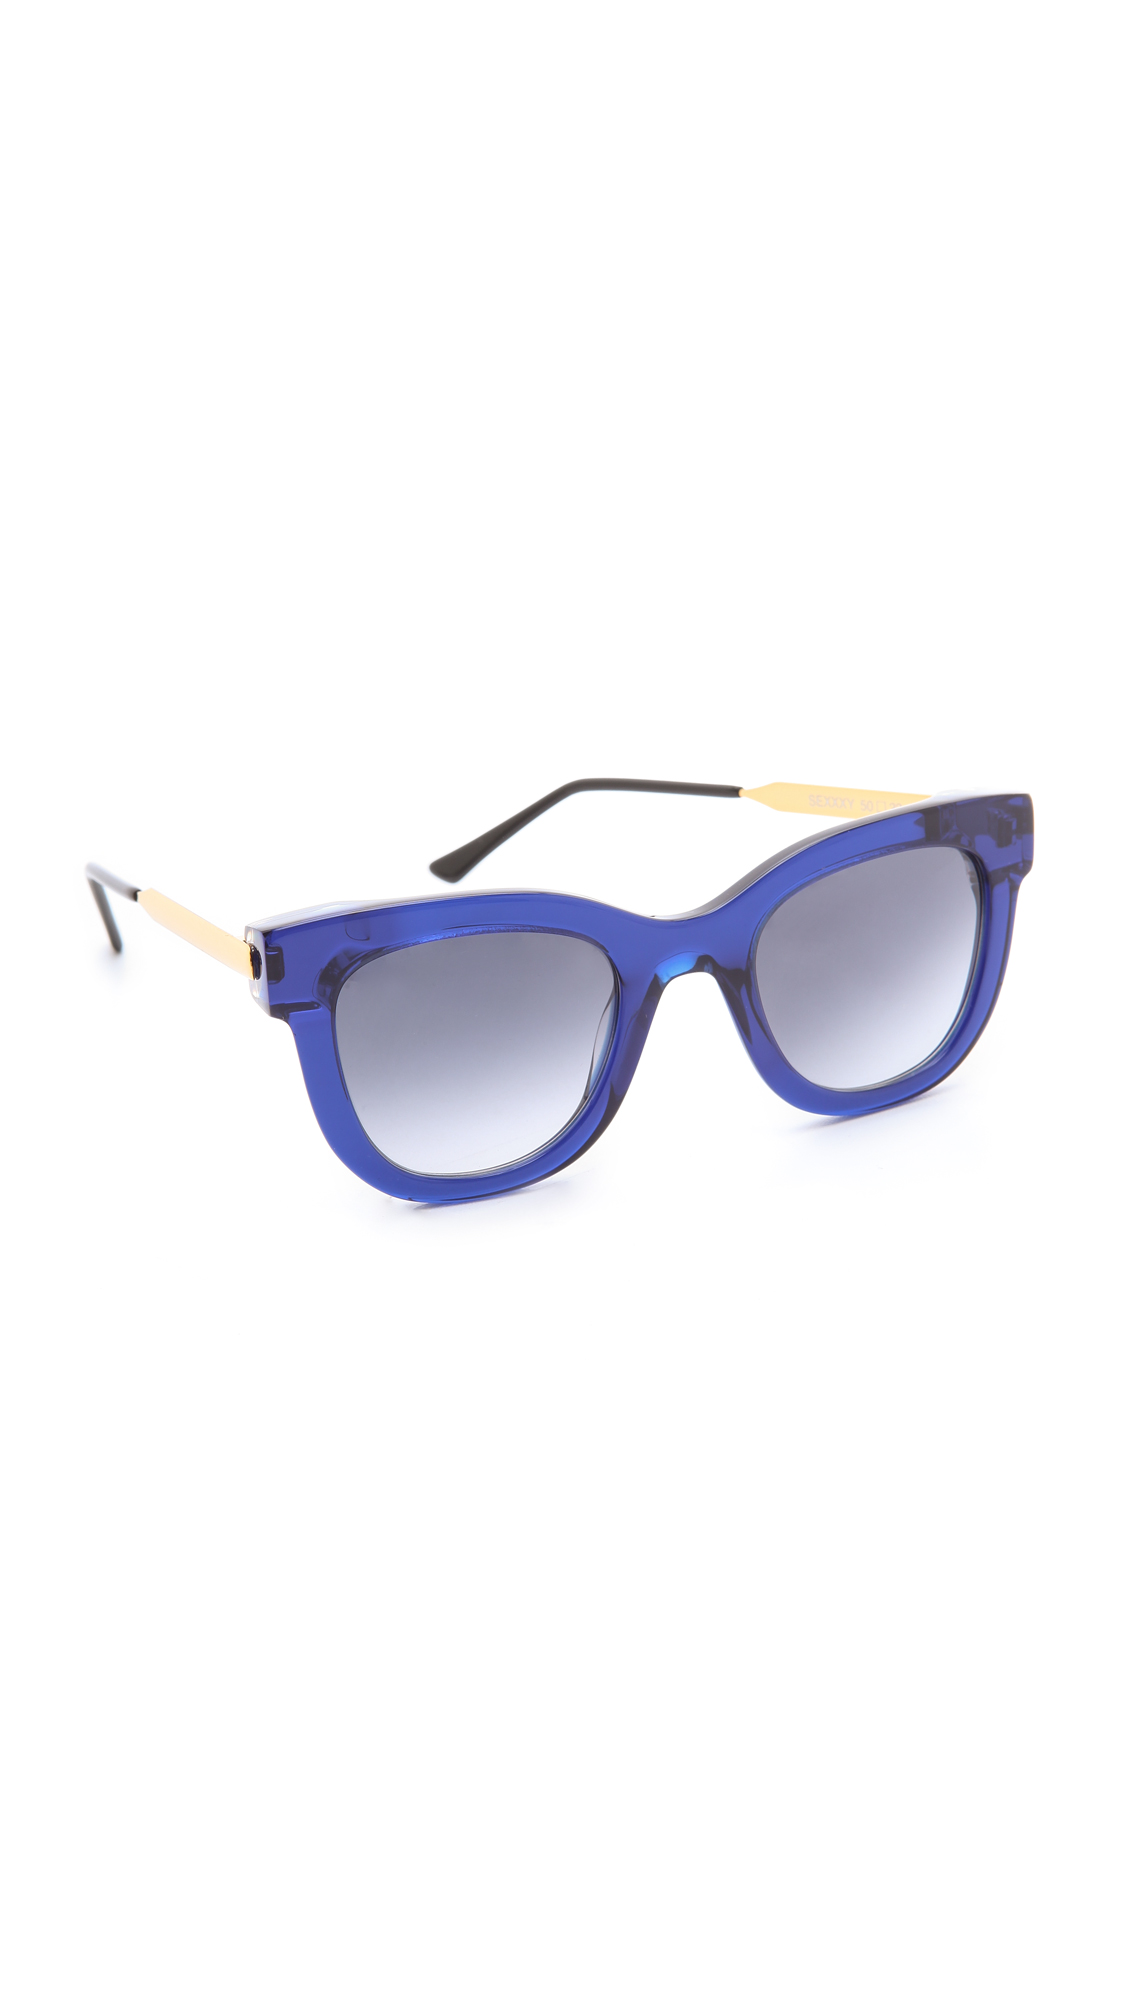 Thierry lasry Sexxxy Sunglasses in Blue (Navy)